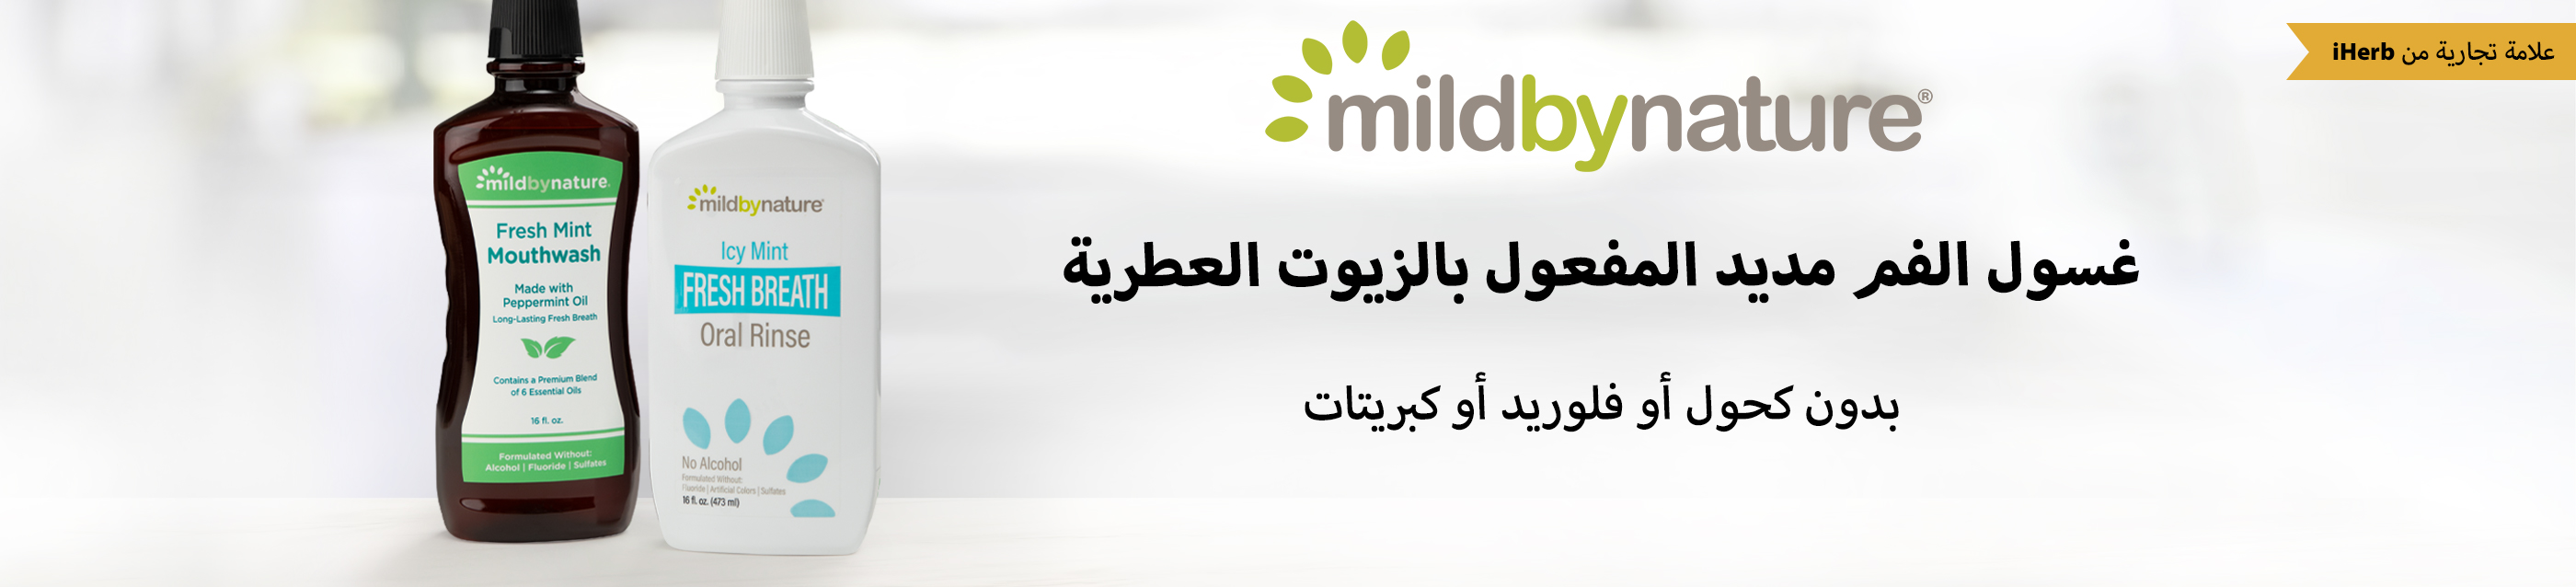 Mild By Nature, Oral Care